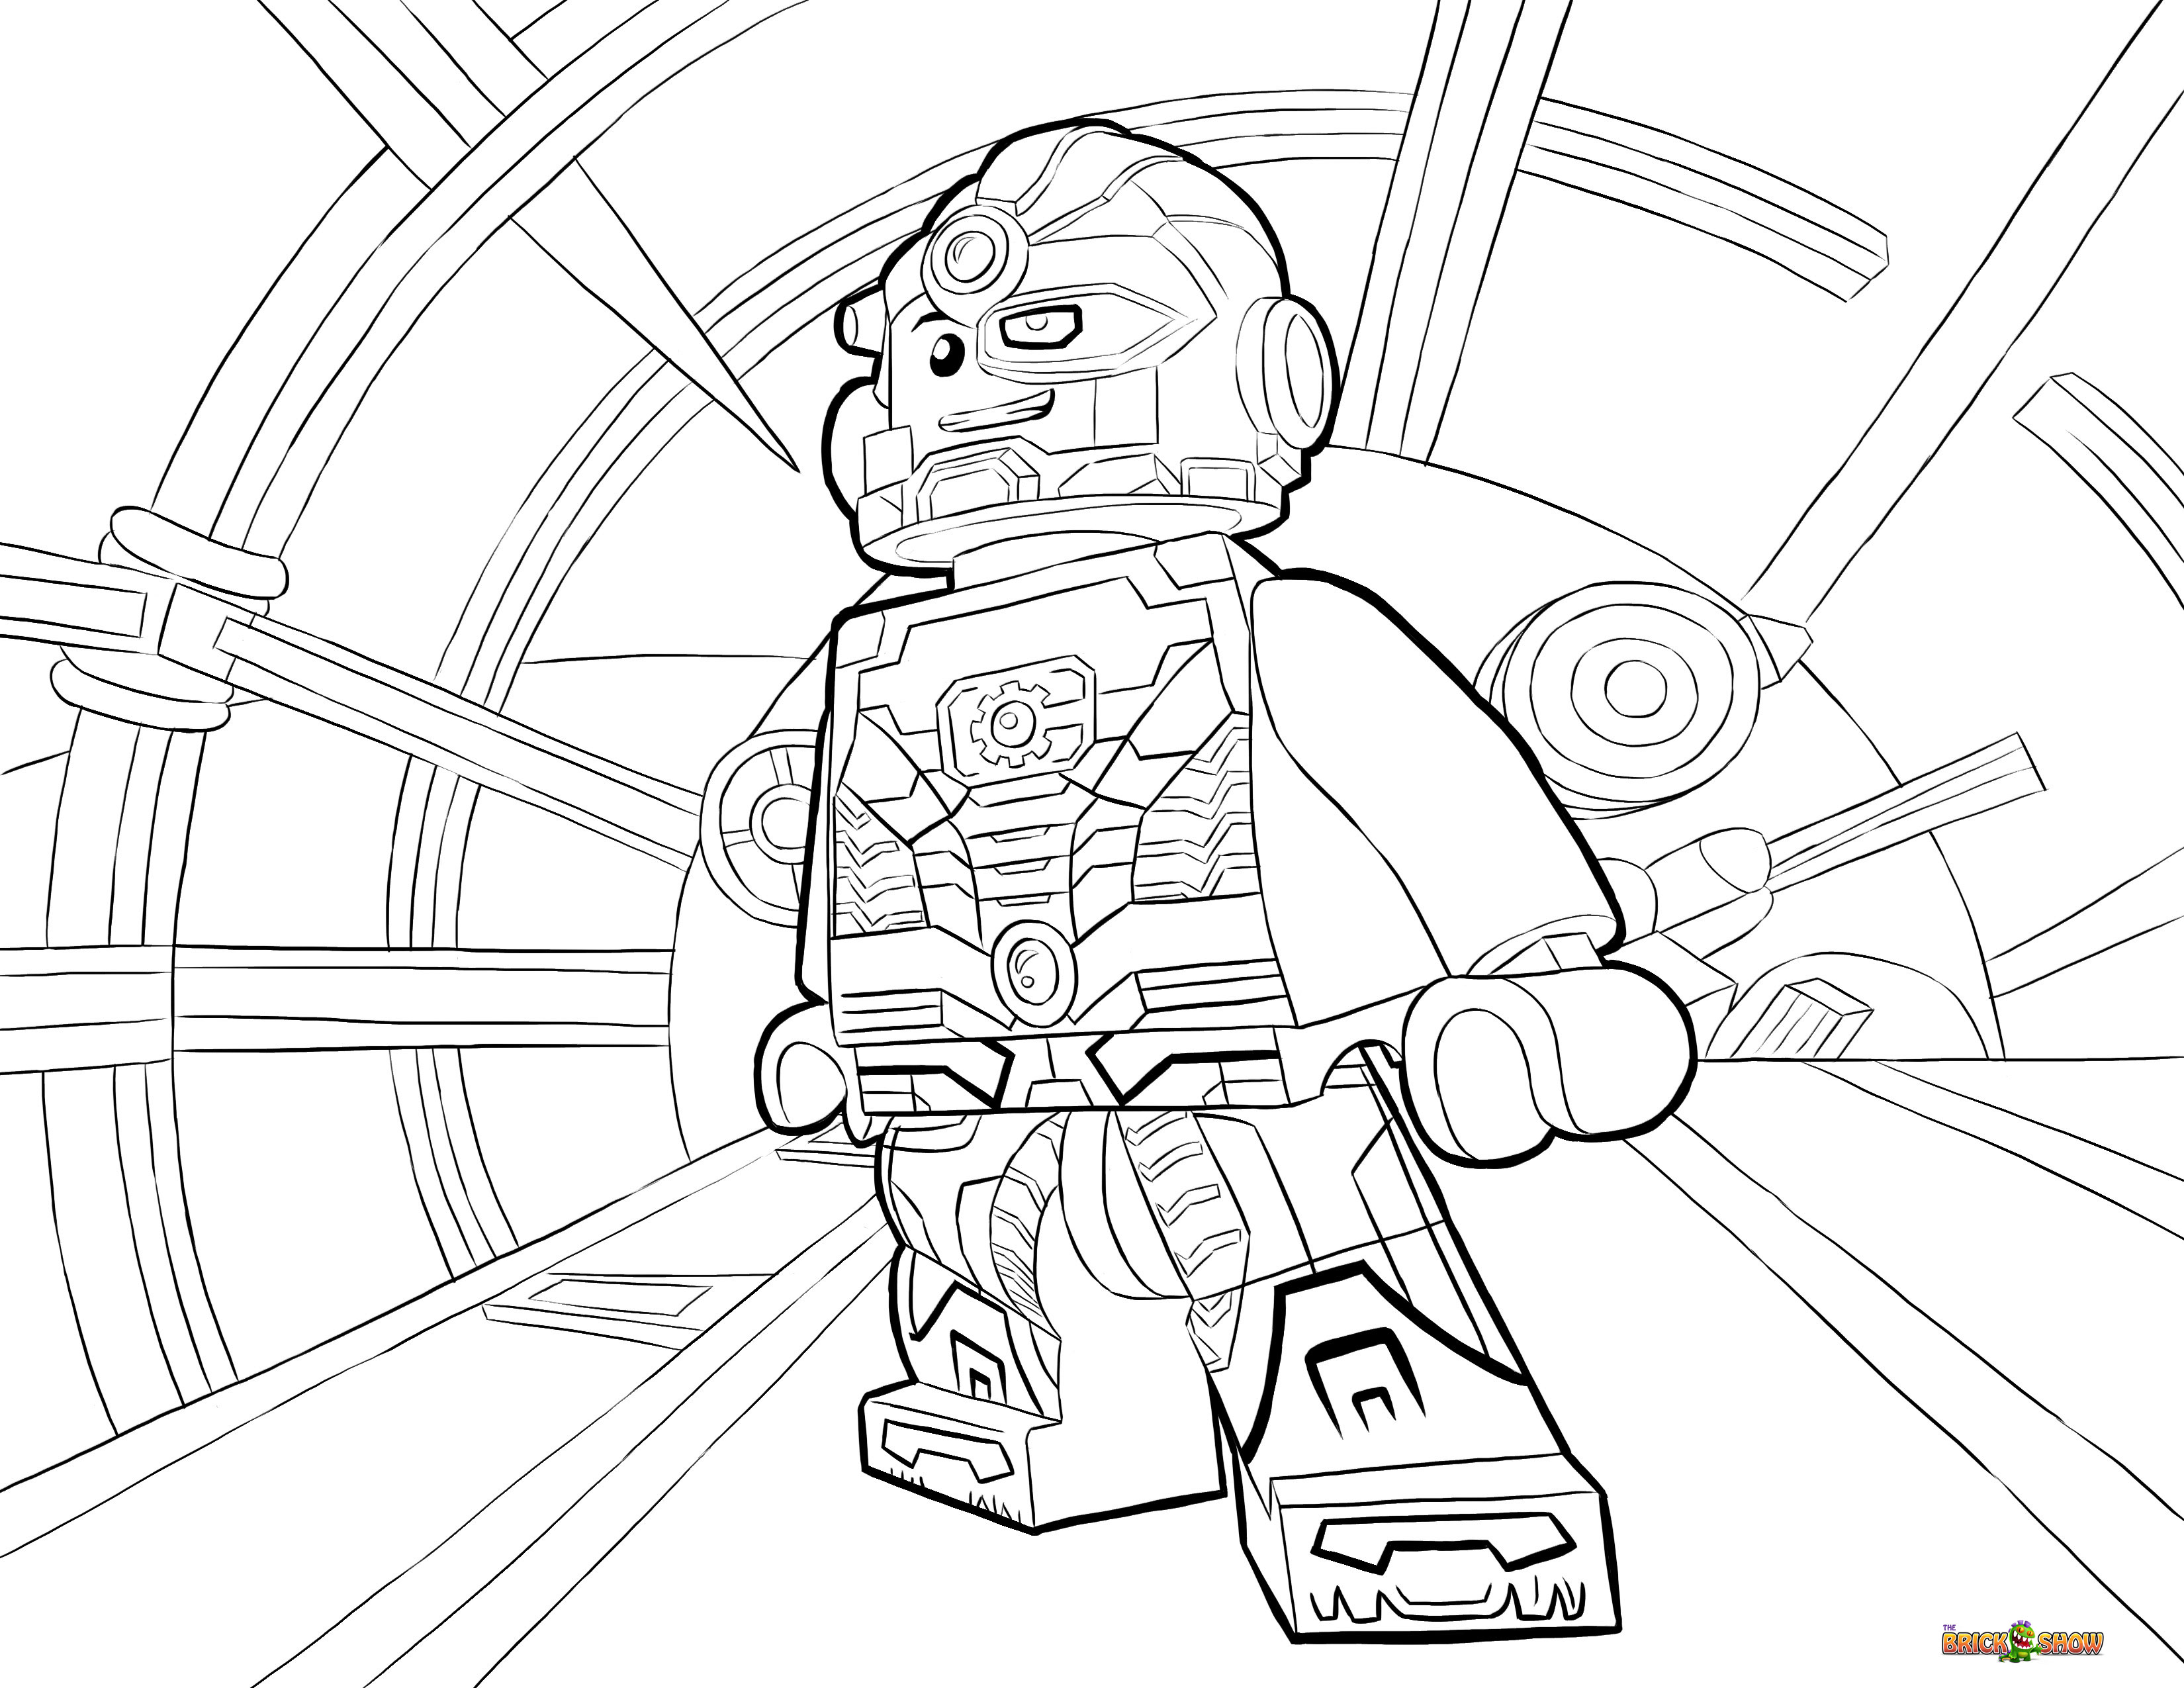 coloring pages superhero coloring book marvel super heroes coloring superhero pages 1 1